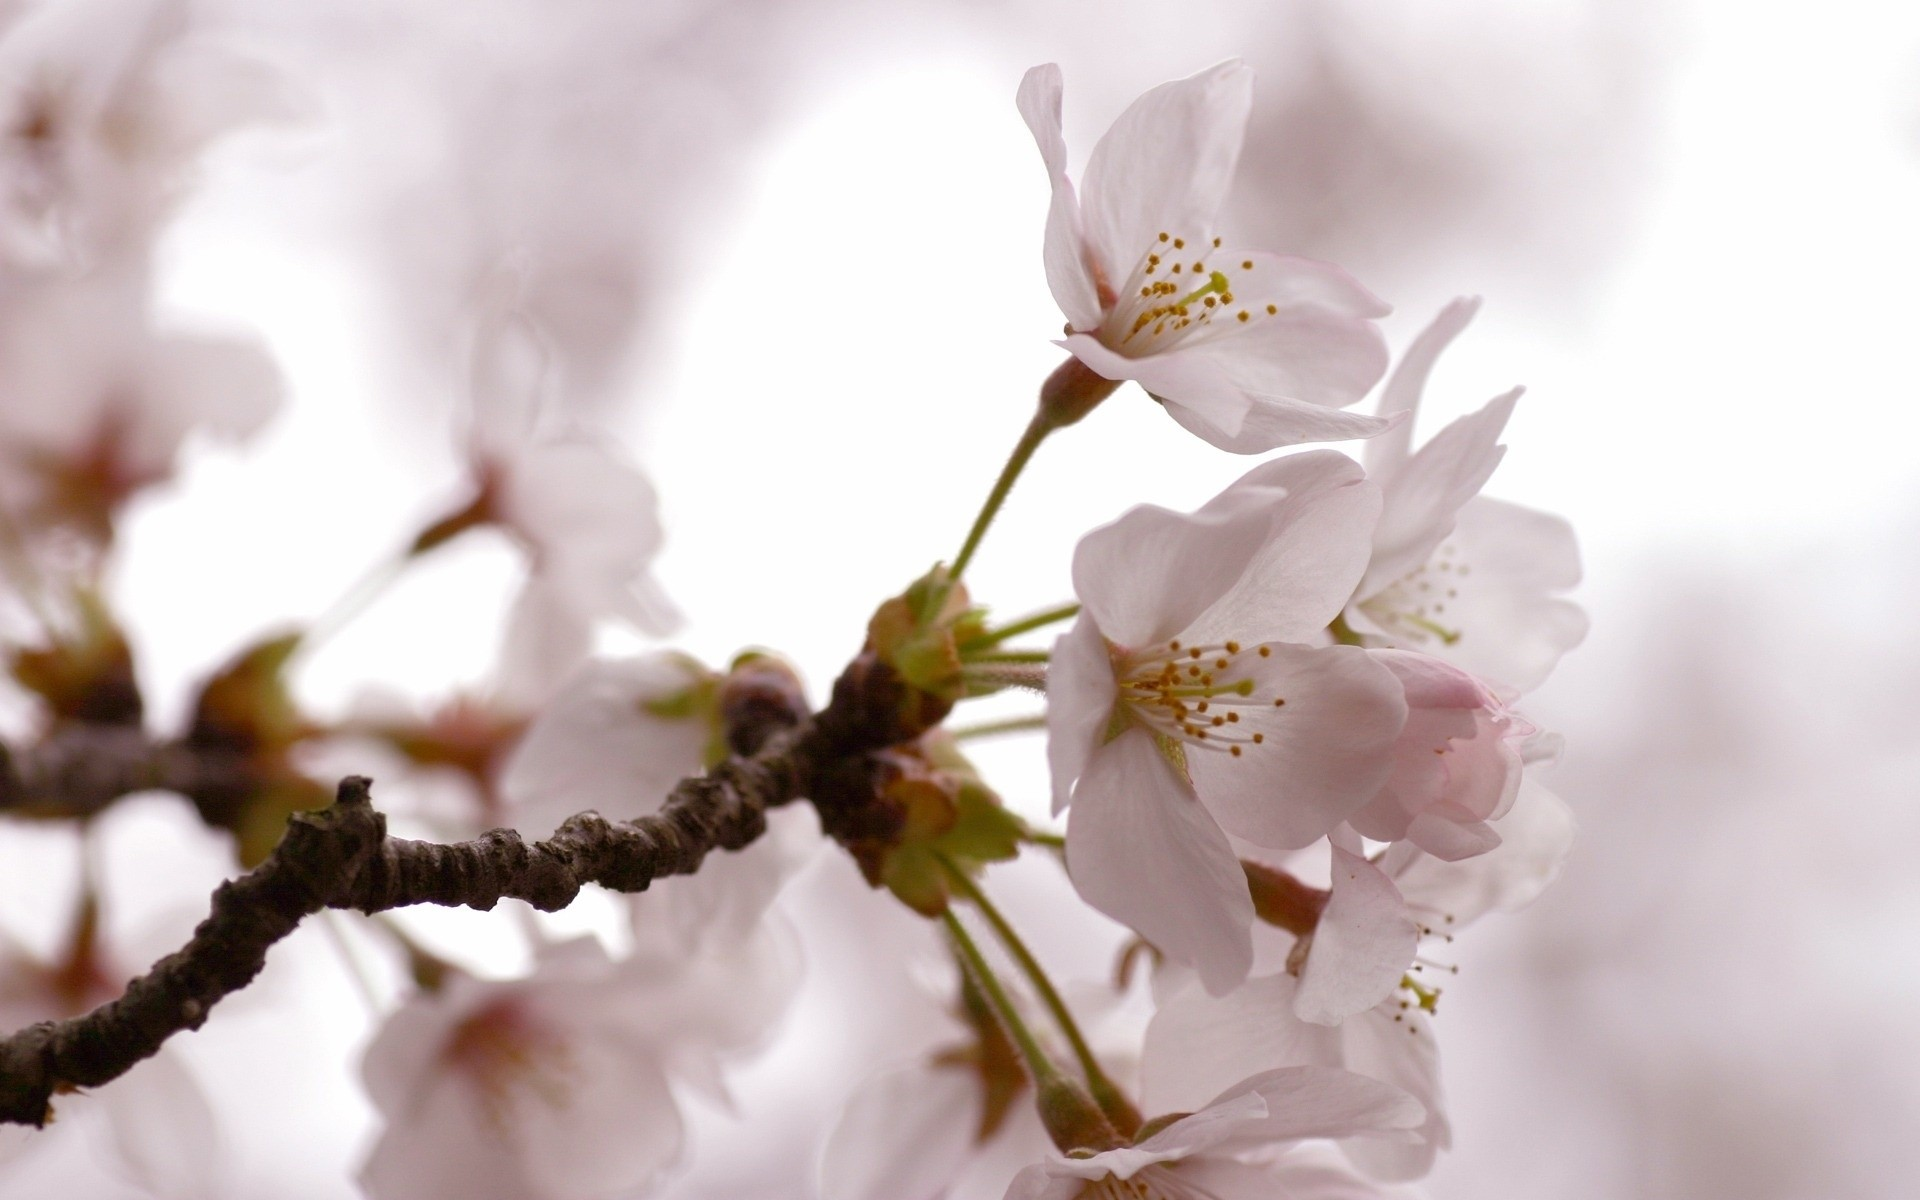 flowers flower cherry nature branch tree flora leaf apple bud plum blooming delicate growth blur petal garden apricot floral bright